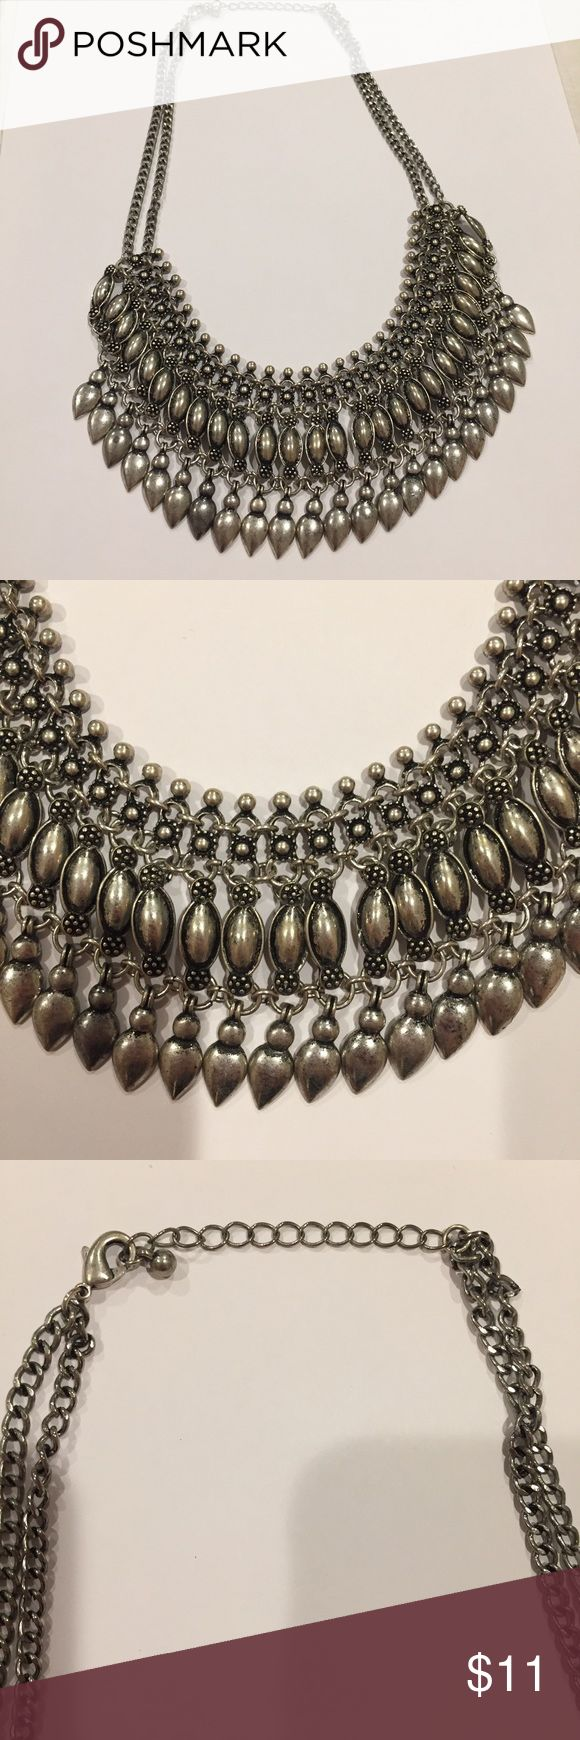 Chunky silver colored necklace Chunky silver necklace. Falls high on neck line. Comfortable and stylish. Limited wear and good condition. Jewelry Necklaces